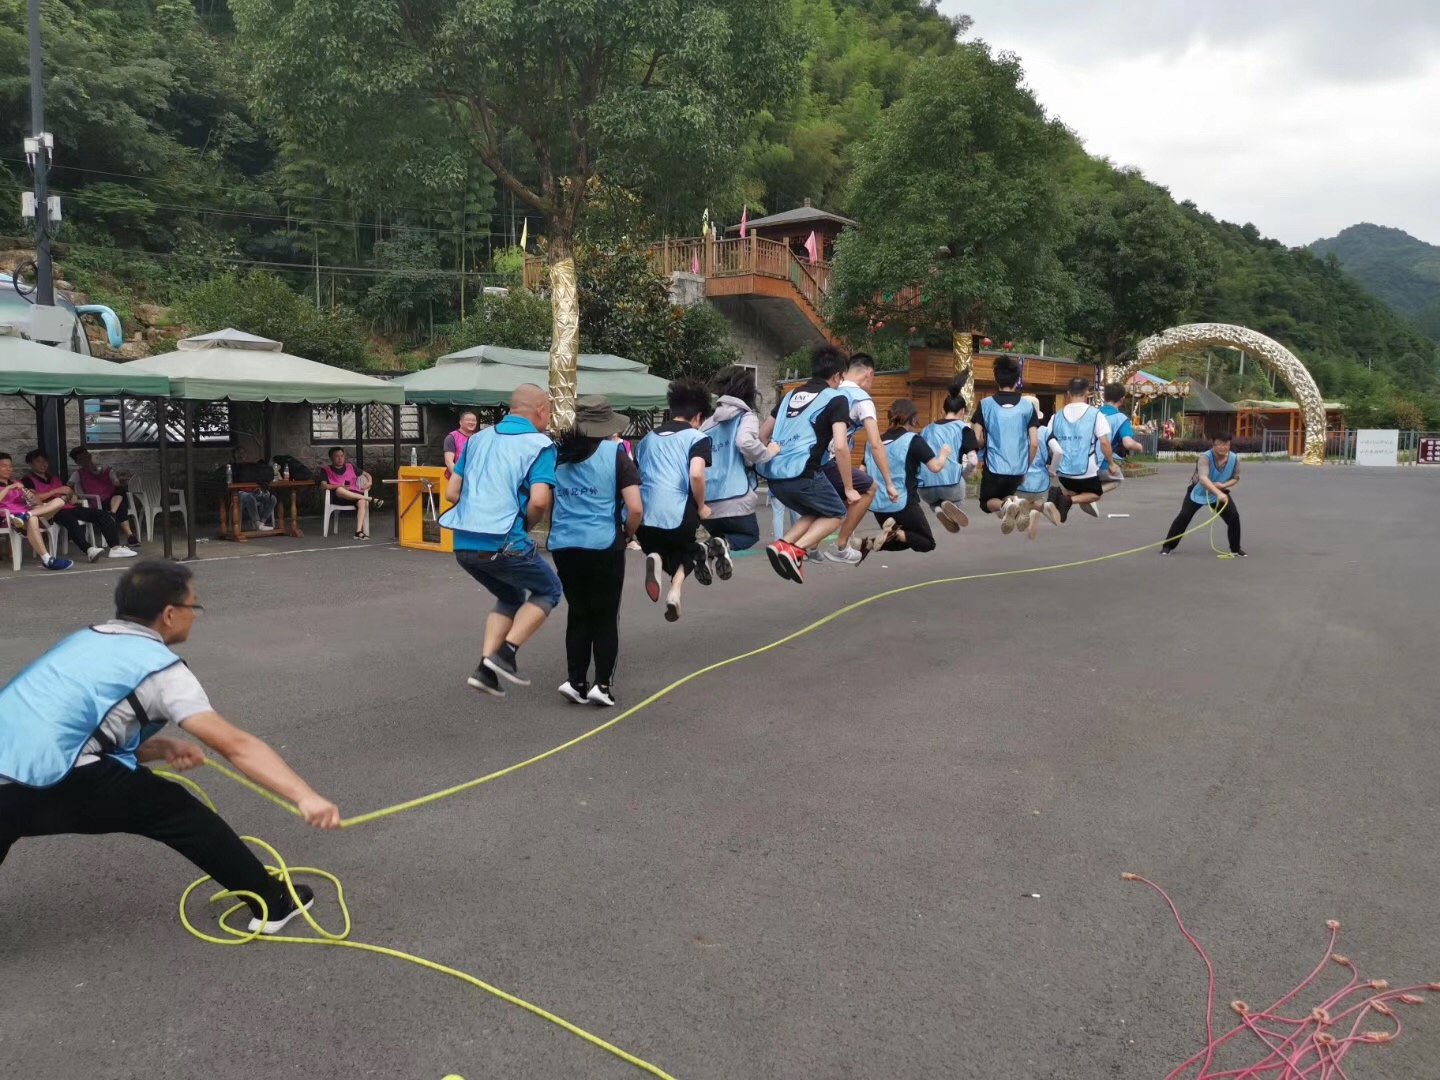 swing and jump, 10+ person game